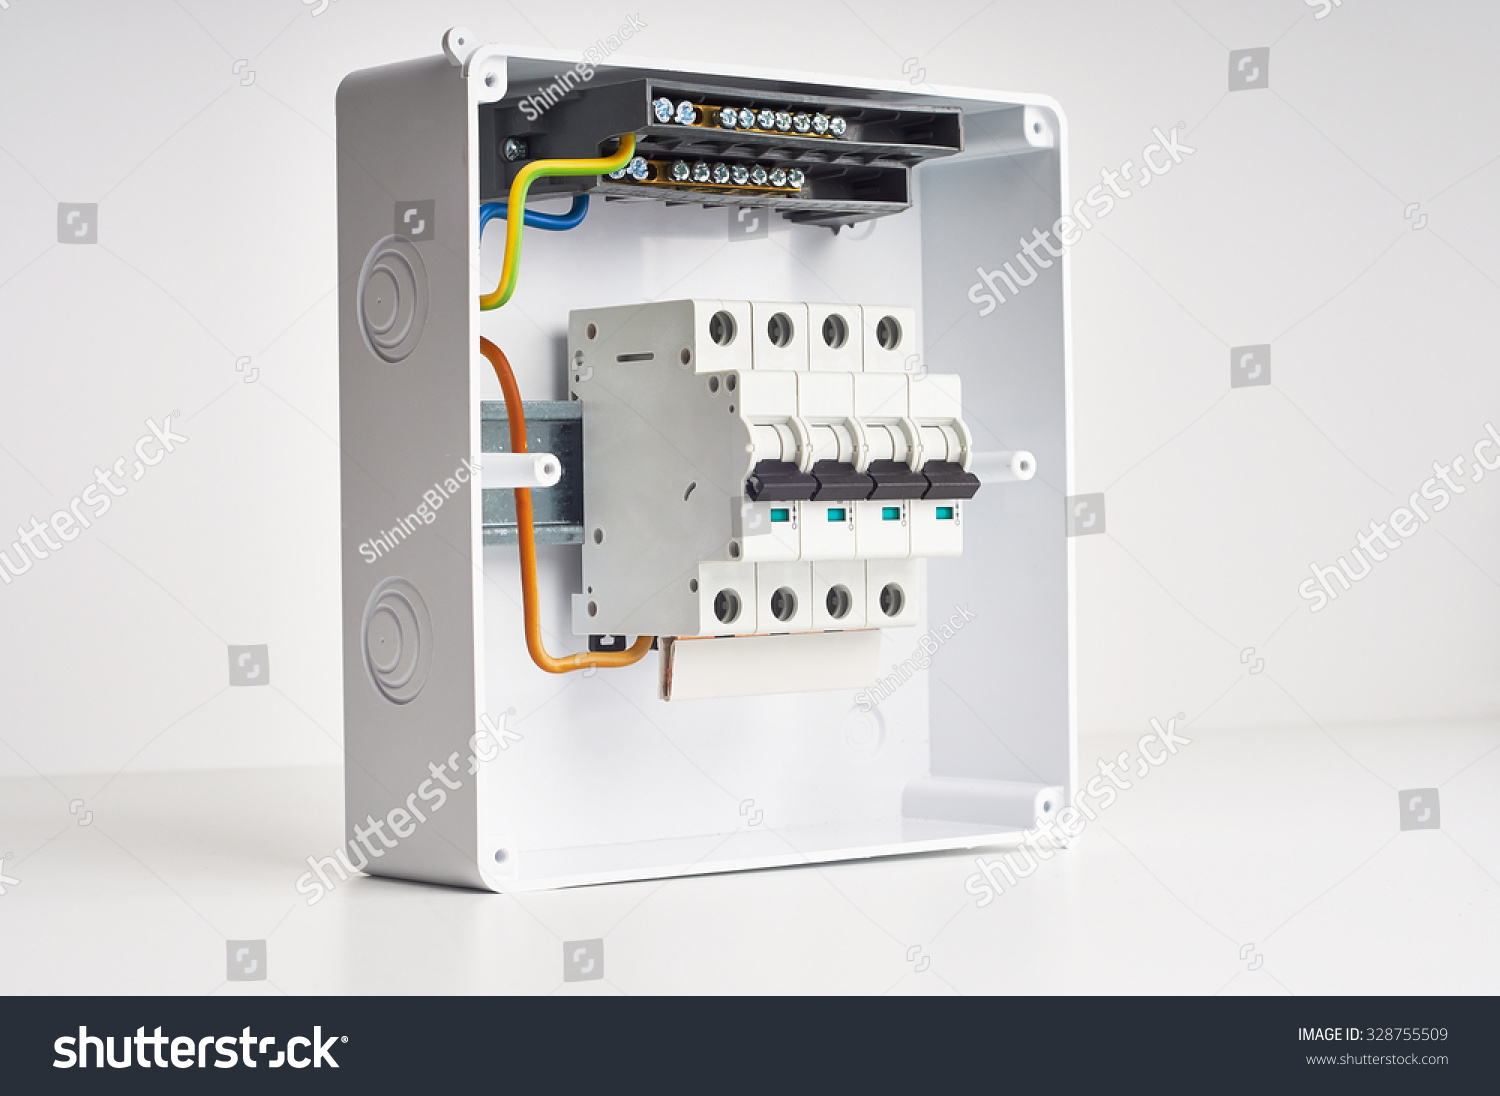 hight resolution of automatic fuses and wires in fusebox electricity distribution box inside